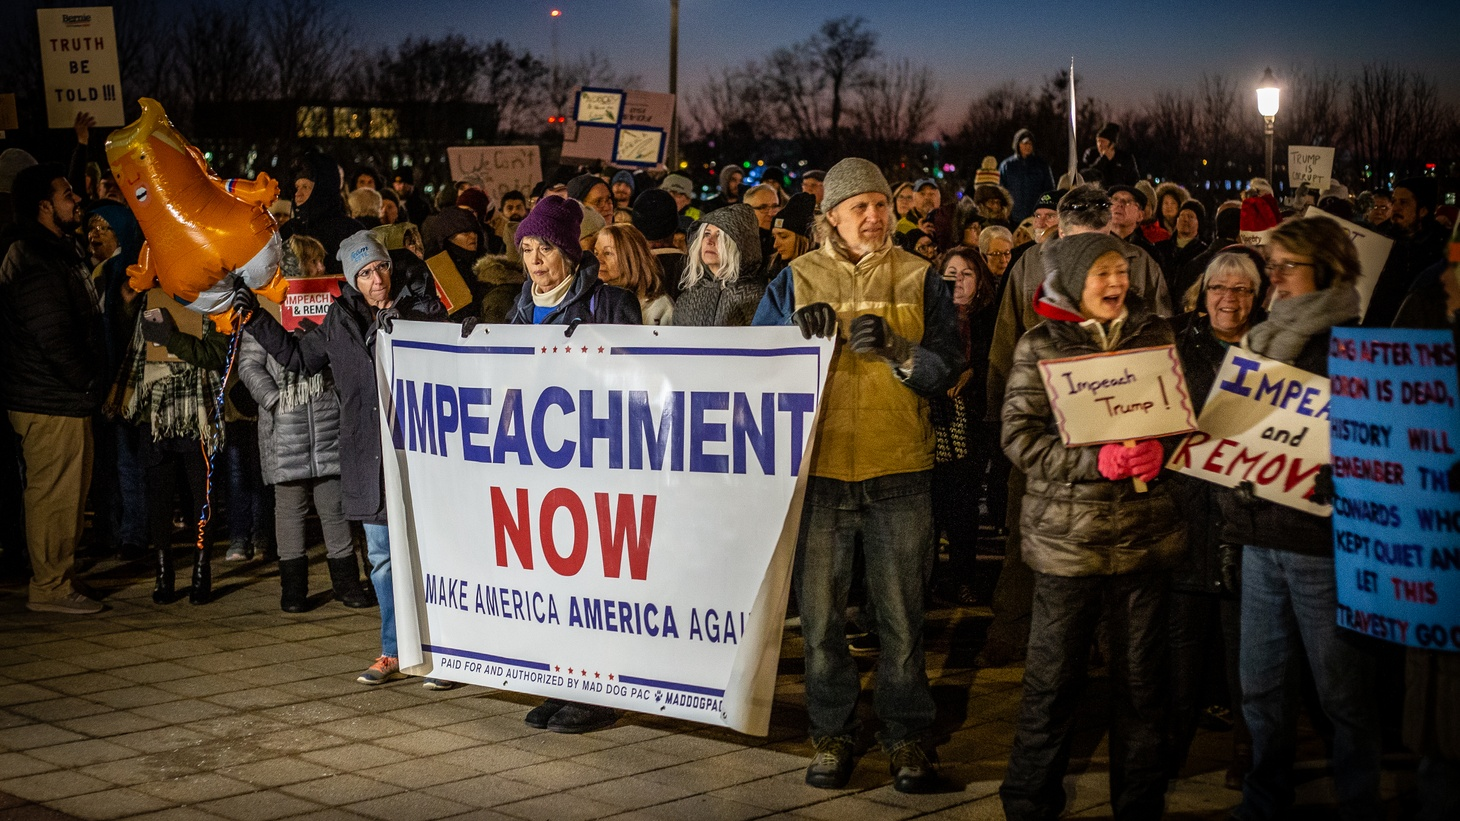 Hundreds of people gather in front of the Iowa State Capitol in Des Moines calling for the impeachment of Donald Trump.